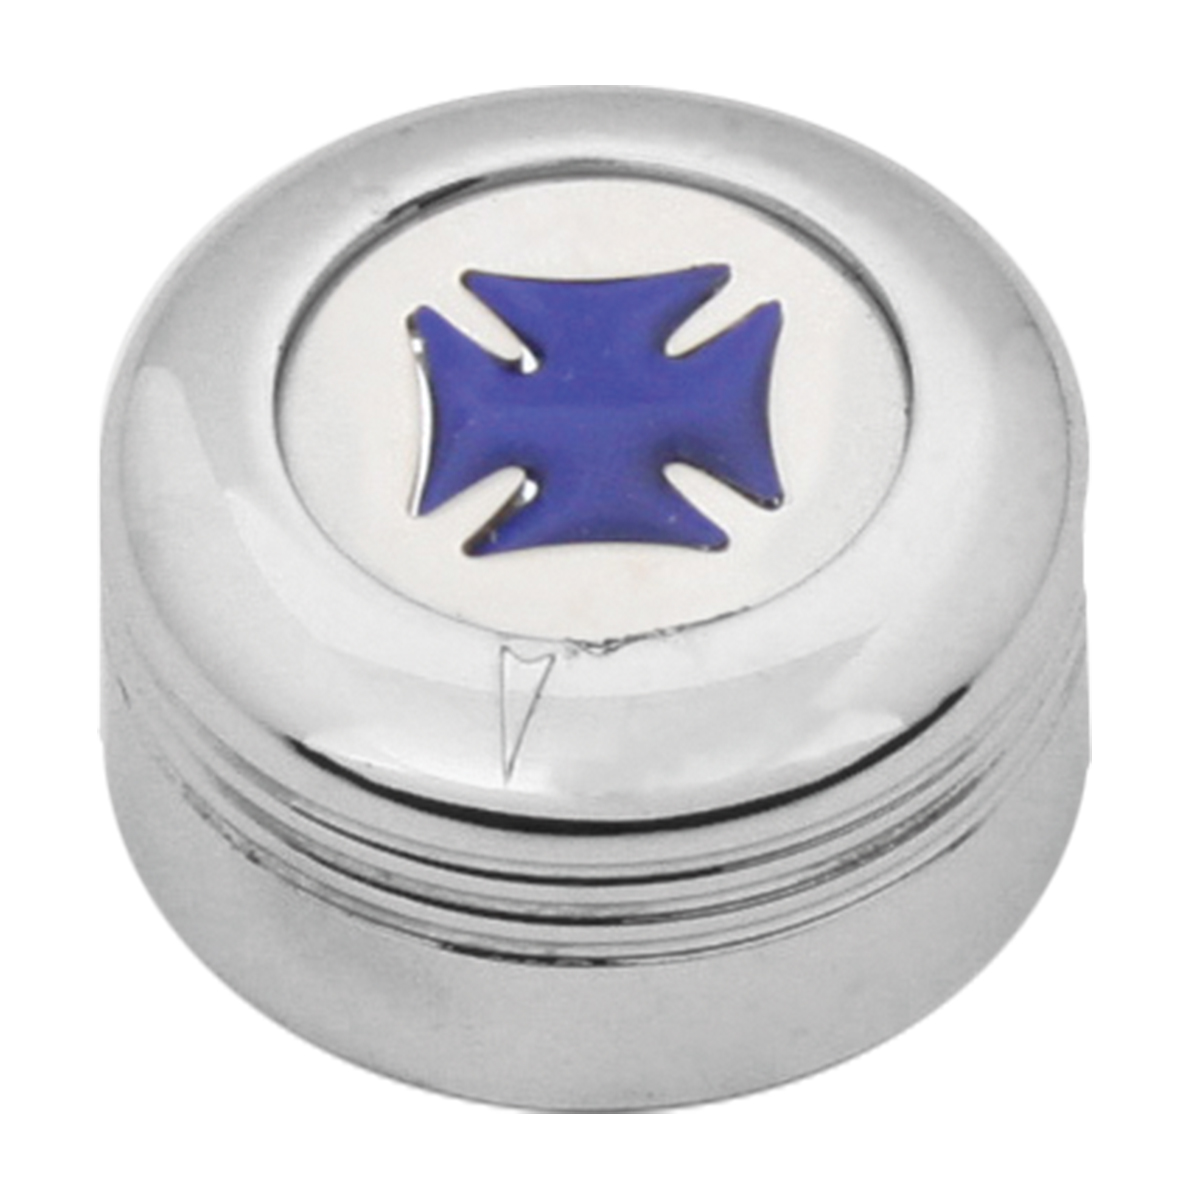 Chrome Plastic A/C Knob w/ Blue Iron Cross for Pete